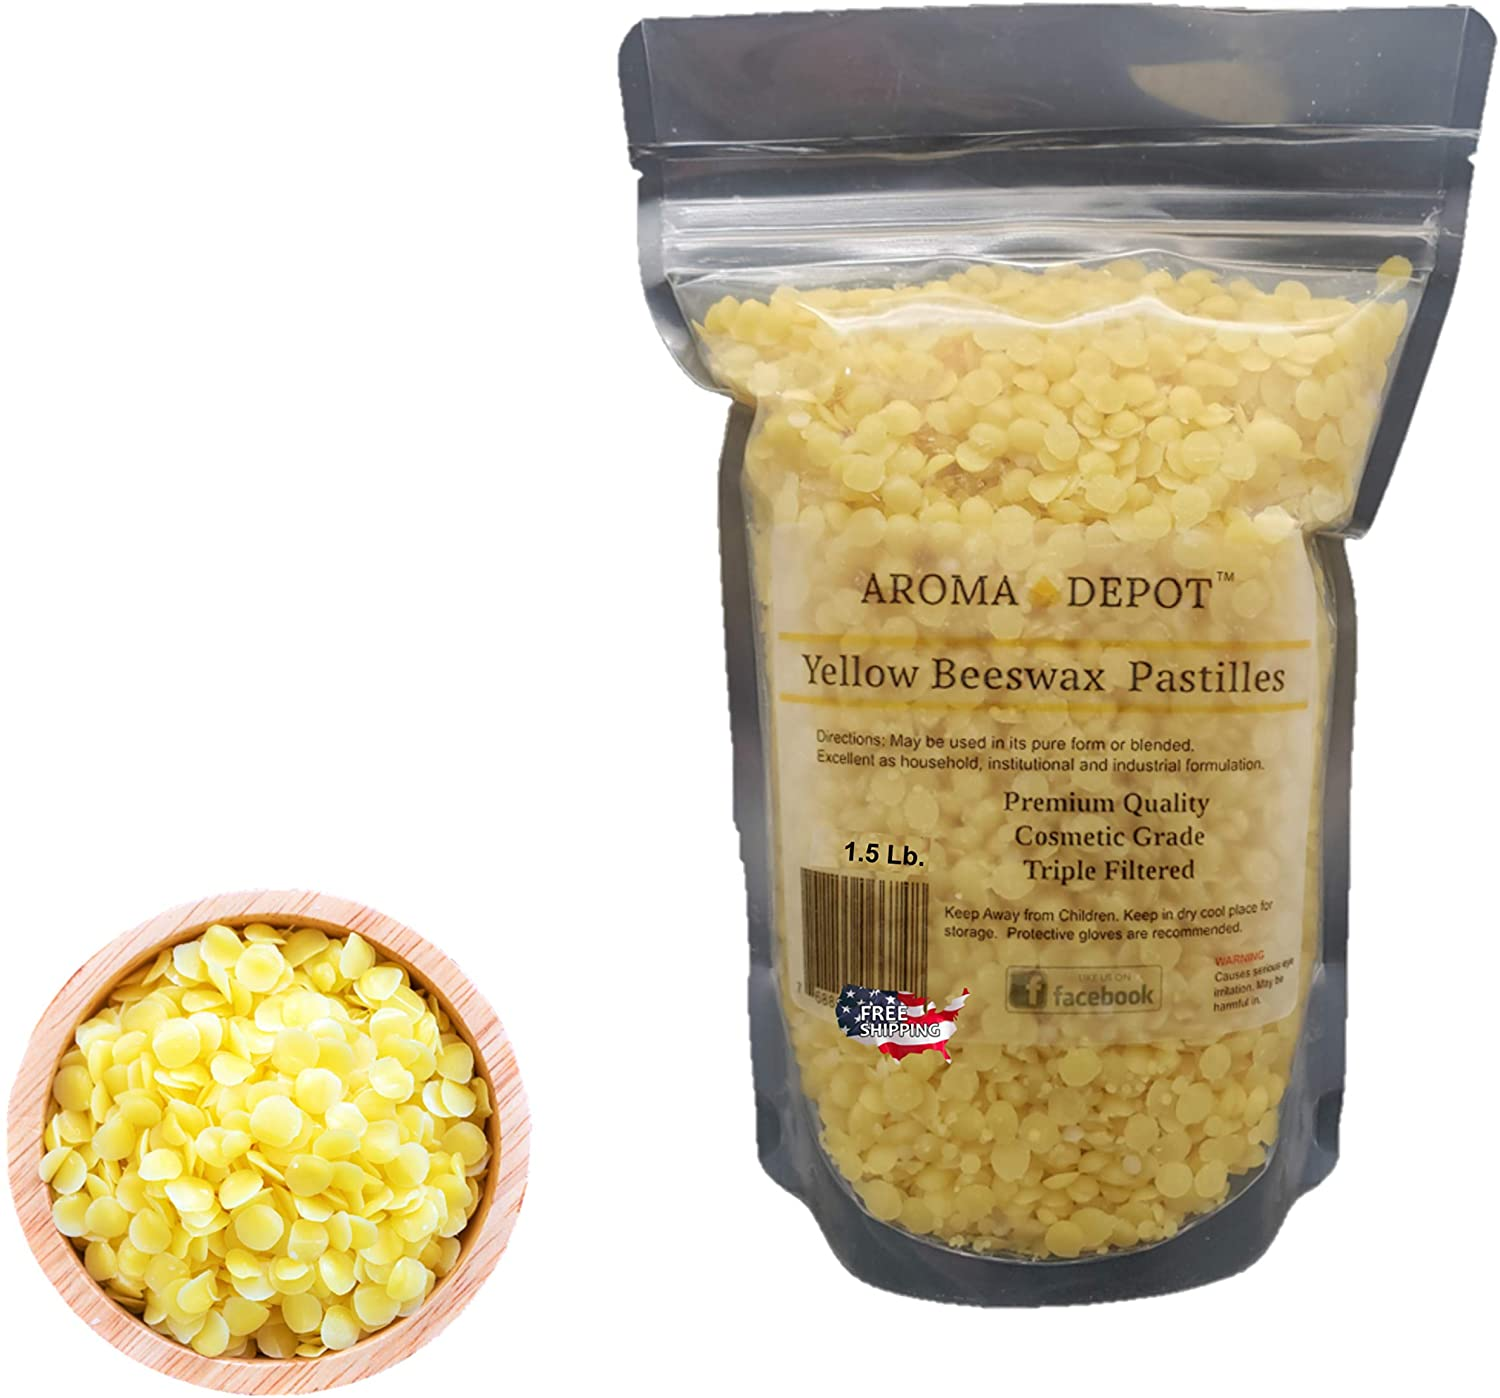 Aroma Depot 1.5 Lb Yellow Beeswax Pellets 100% Natural Pure Bees Wax 3 x Filtered, Great for Skin, Face & Body, Ideal for DIY, Lotion, Creams, Soaps, Lip Balm and Candle Making Supplies. Easy Melt